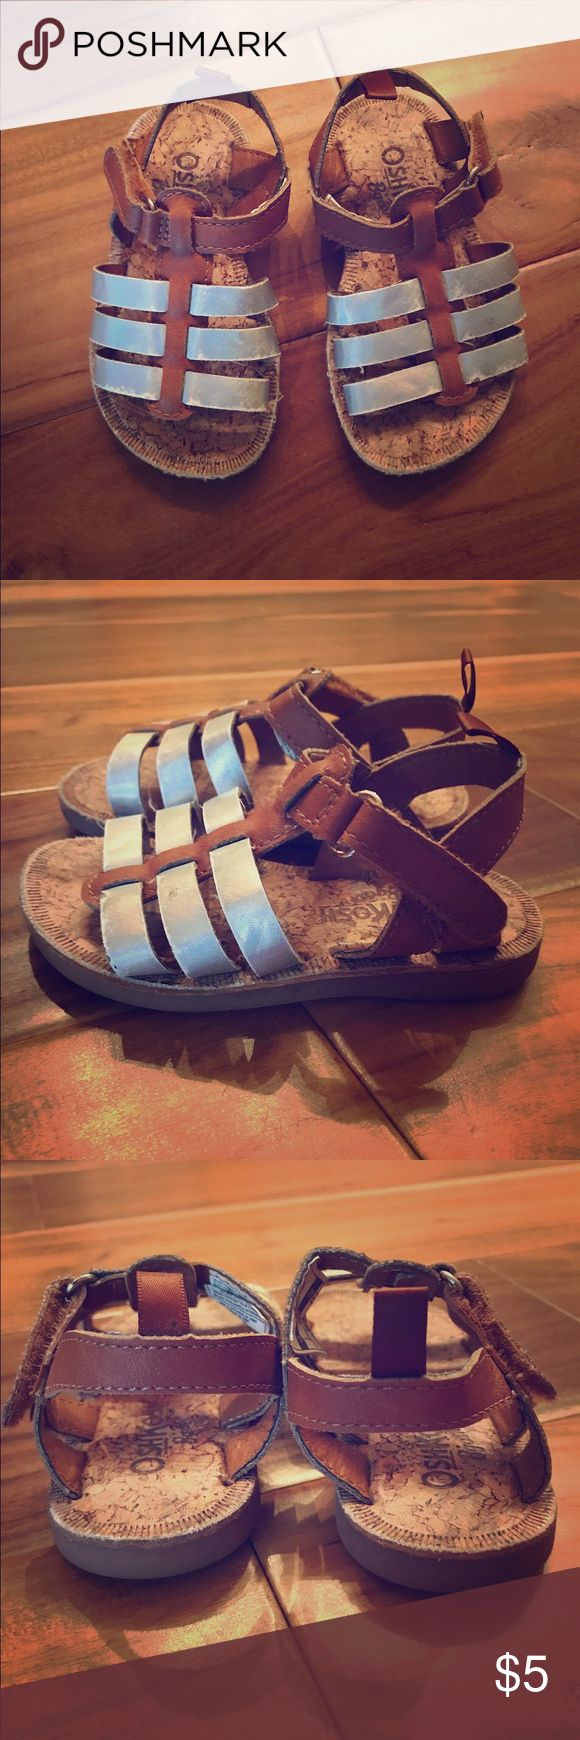 Cork sandals w silver and brown straps Velcro fastener, easy to put on Osh Kosh Shoes Sandals & Flip Flops